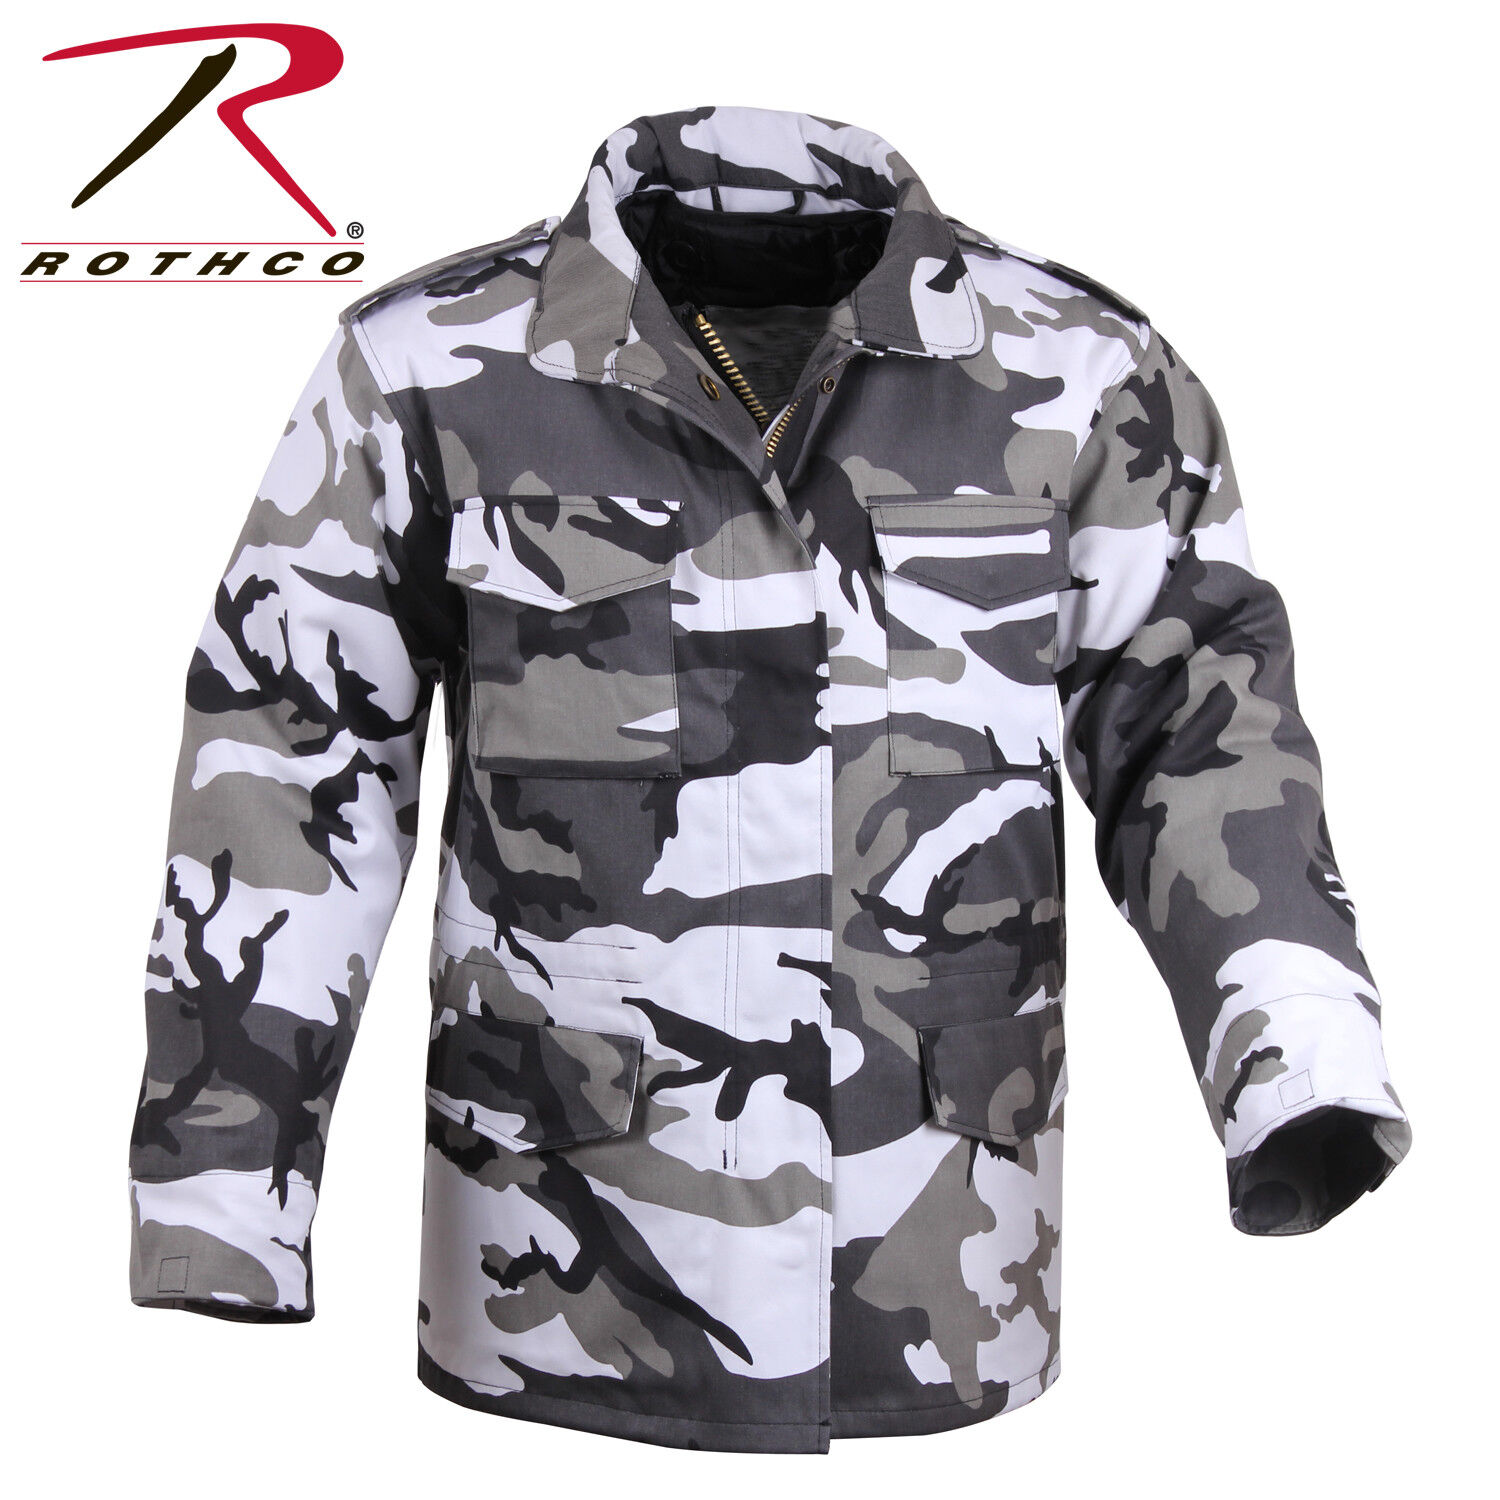 Rothco M65 Field Coat with removeable quilted liner CITY CAMO